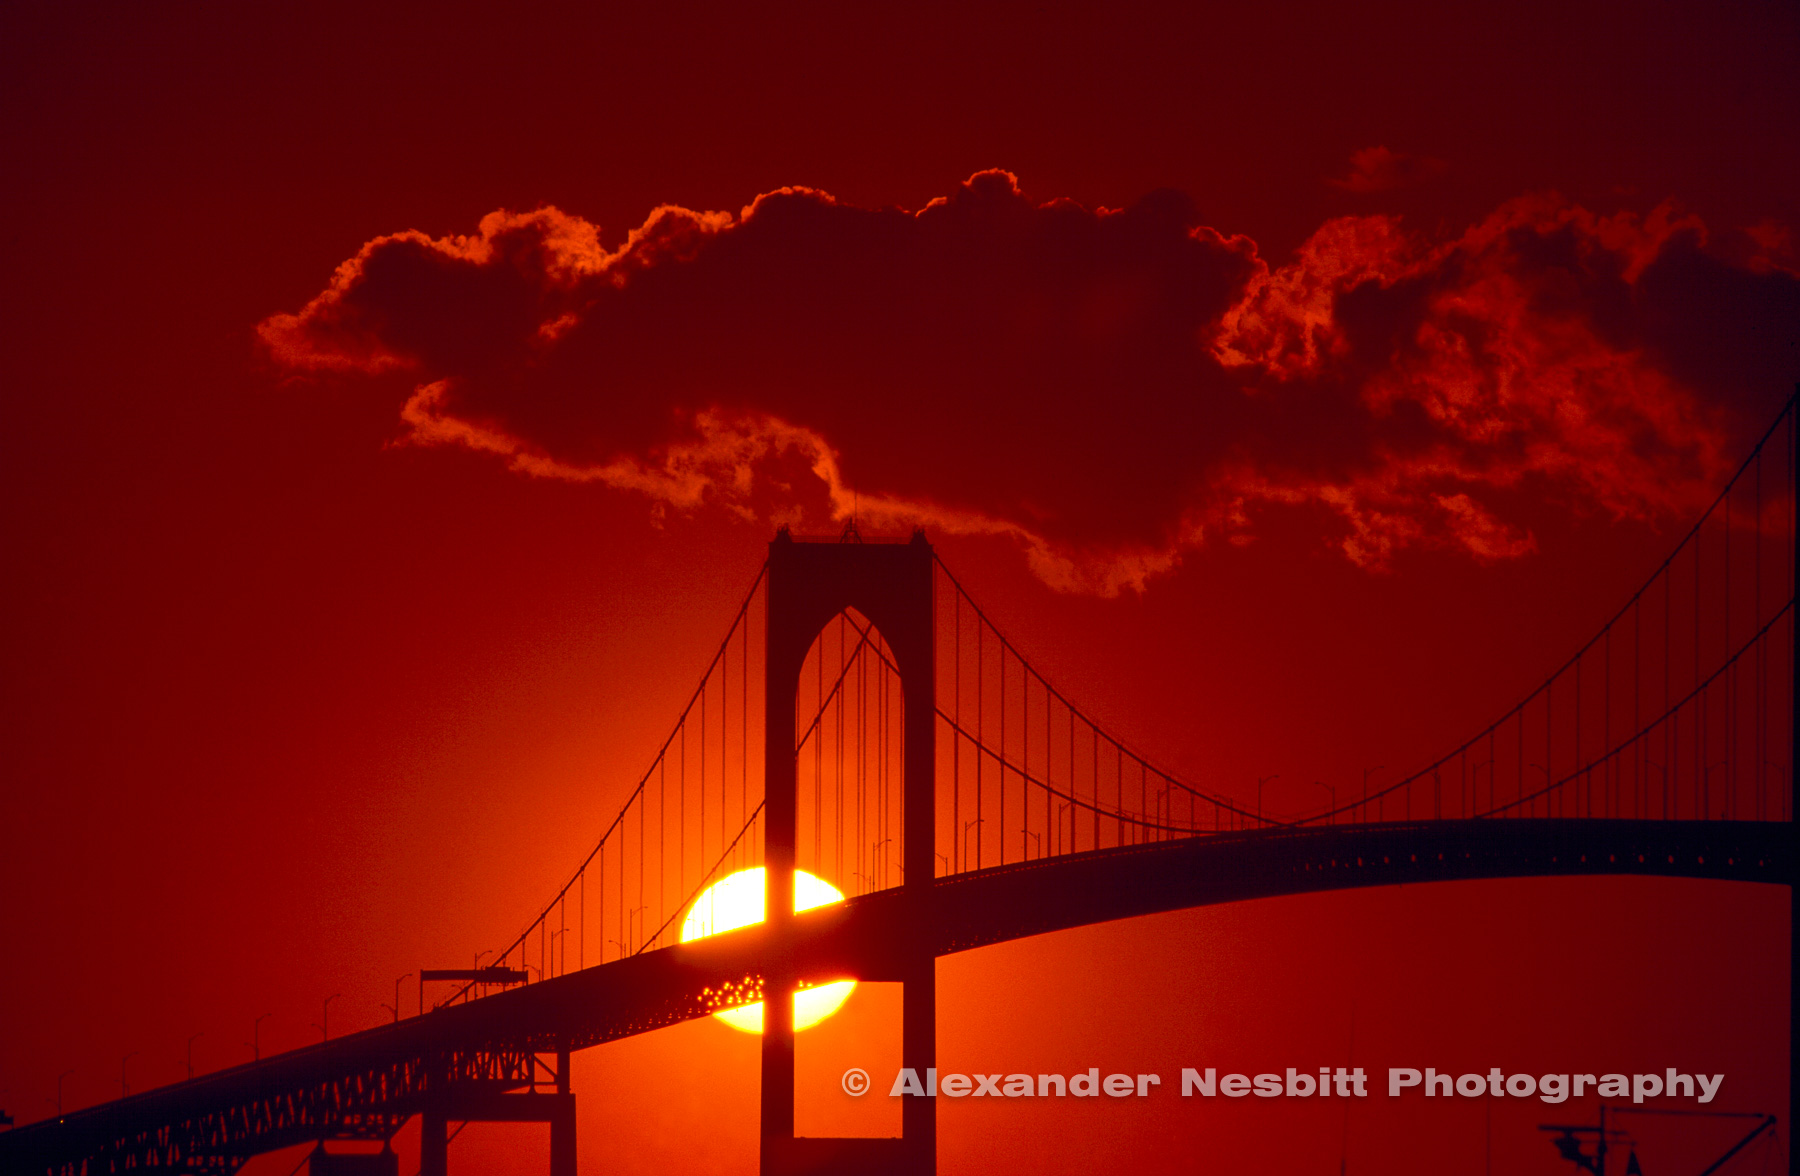 USA, Newport, RI - Sunset behind pilings of Newport Bridge in Newport Ri.